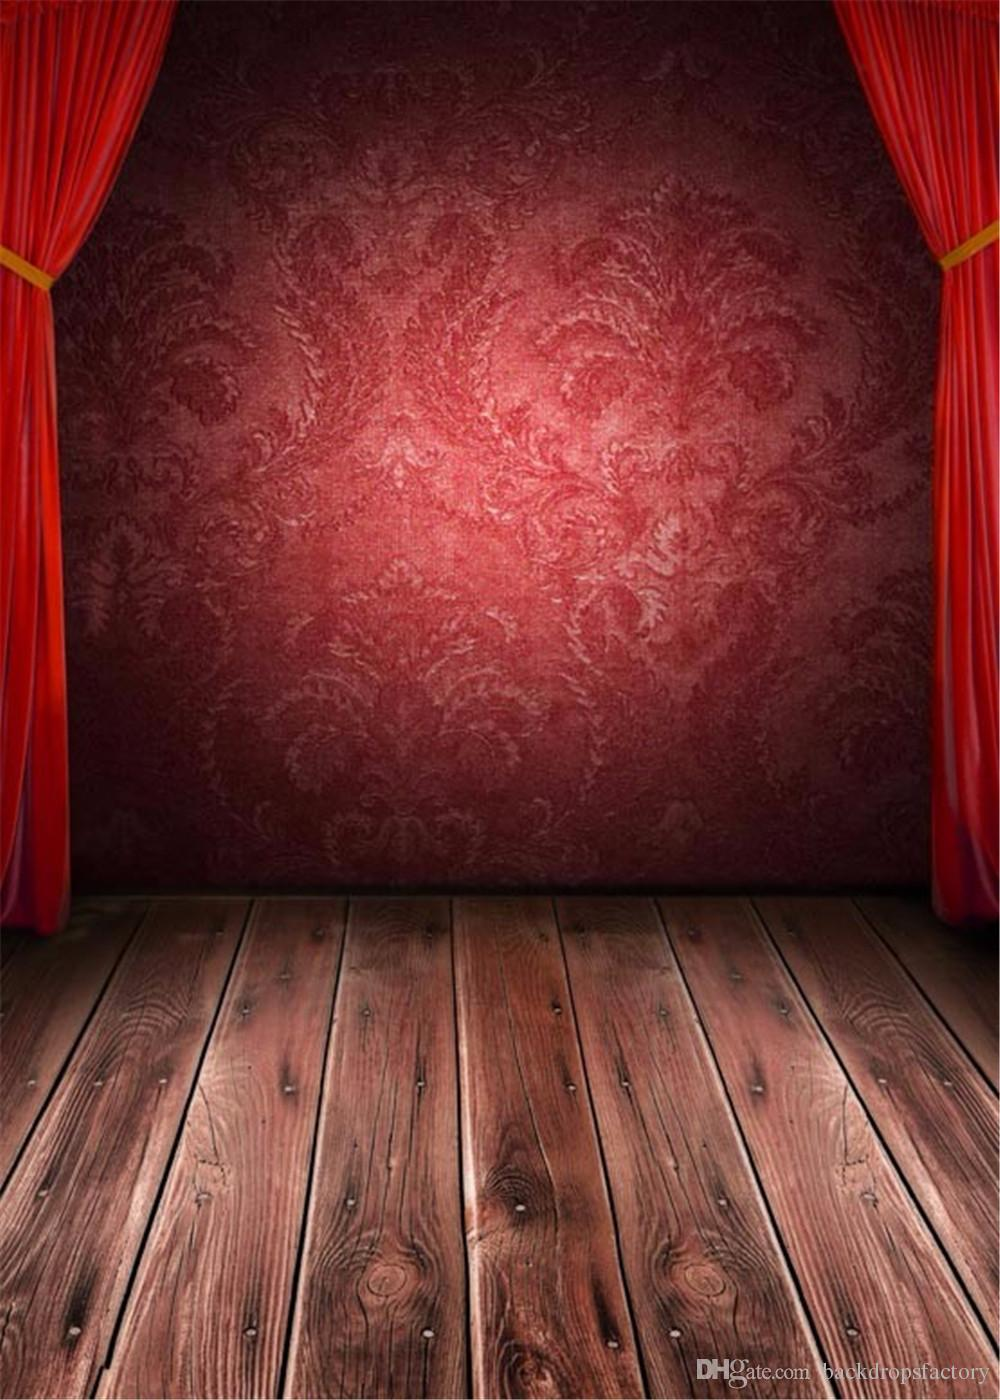 Bl blue stage curtains background - 2017 Red Curtains Stage Photography Backdrops Vintage Brown Wooden Planks Floor Burgundy Damask Wall Children Kids Studio Photo Booth Background From